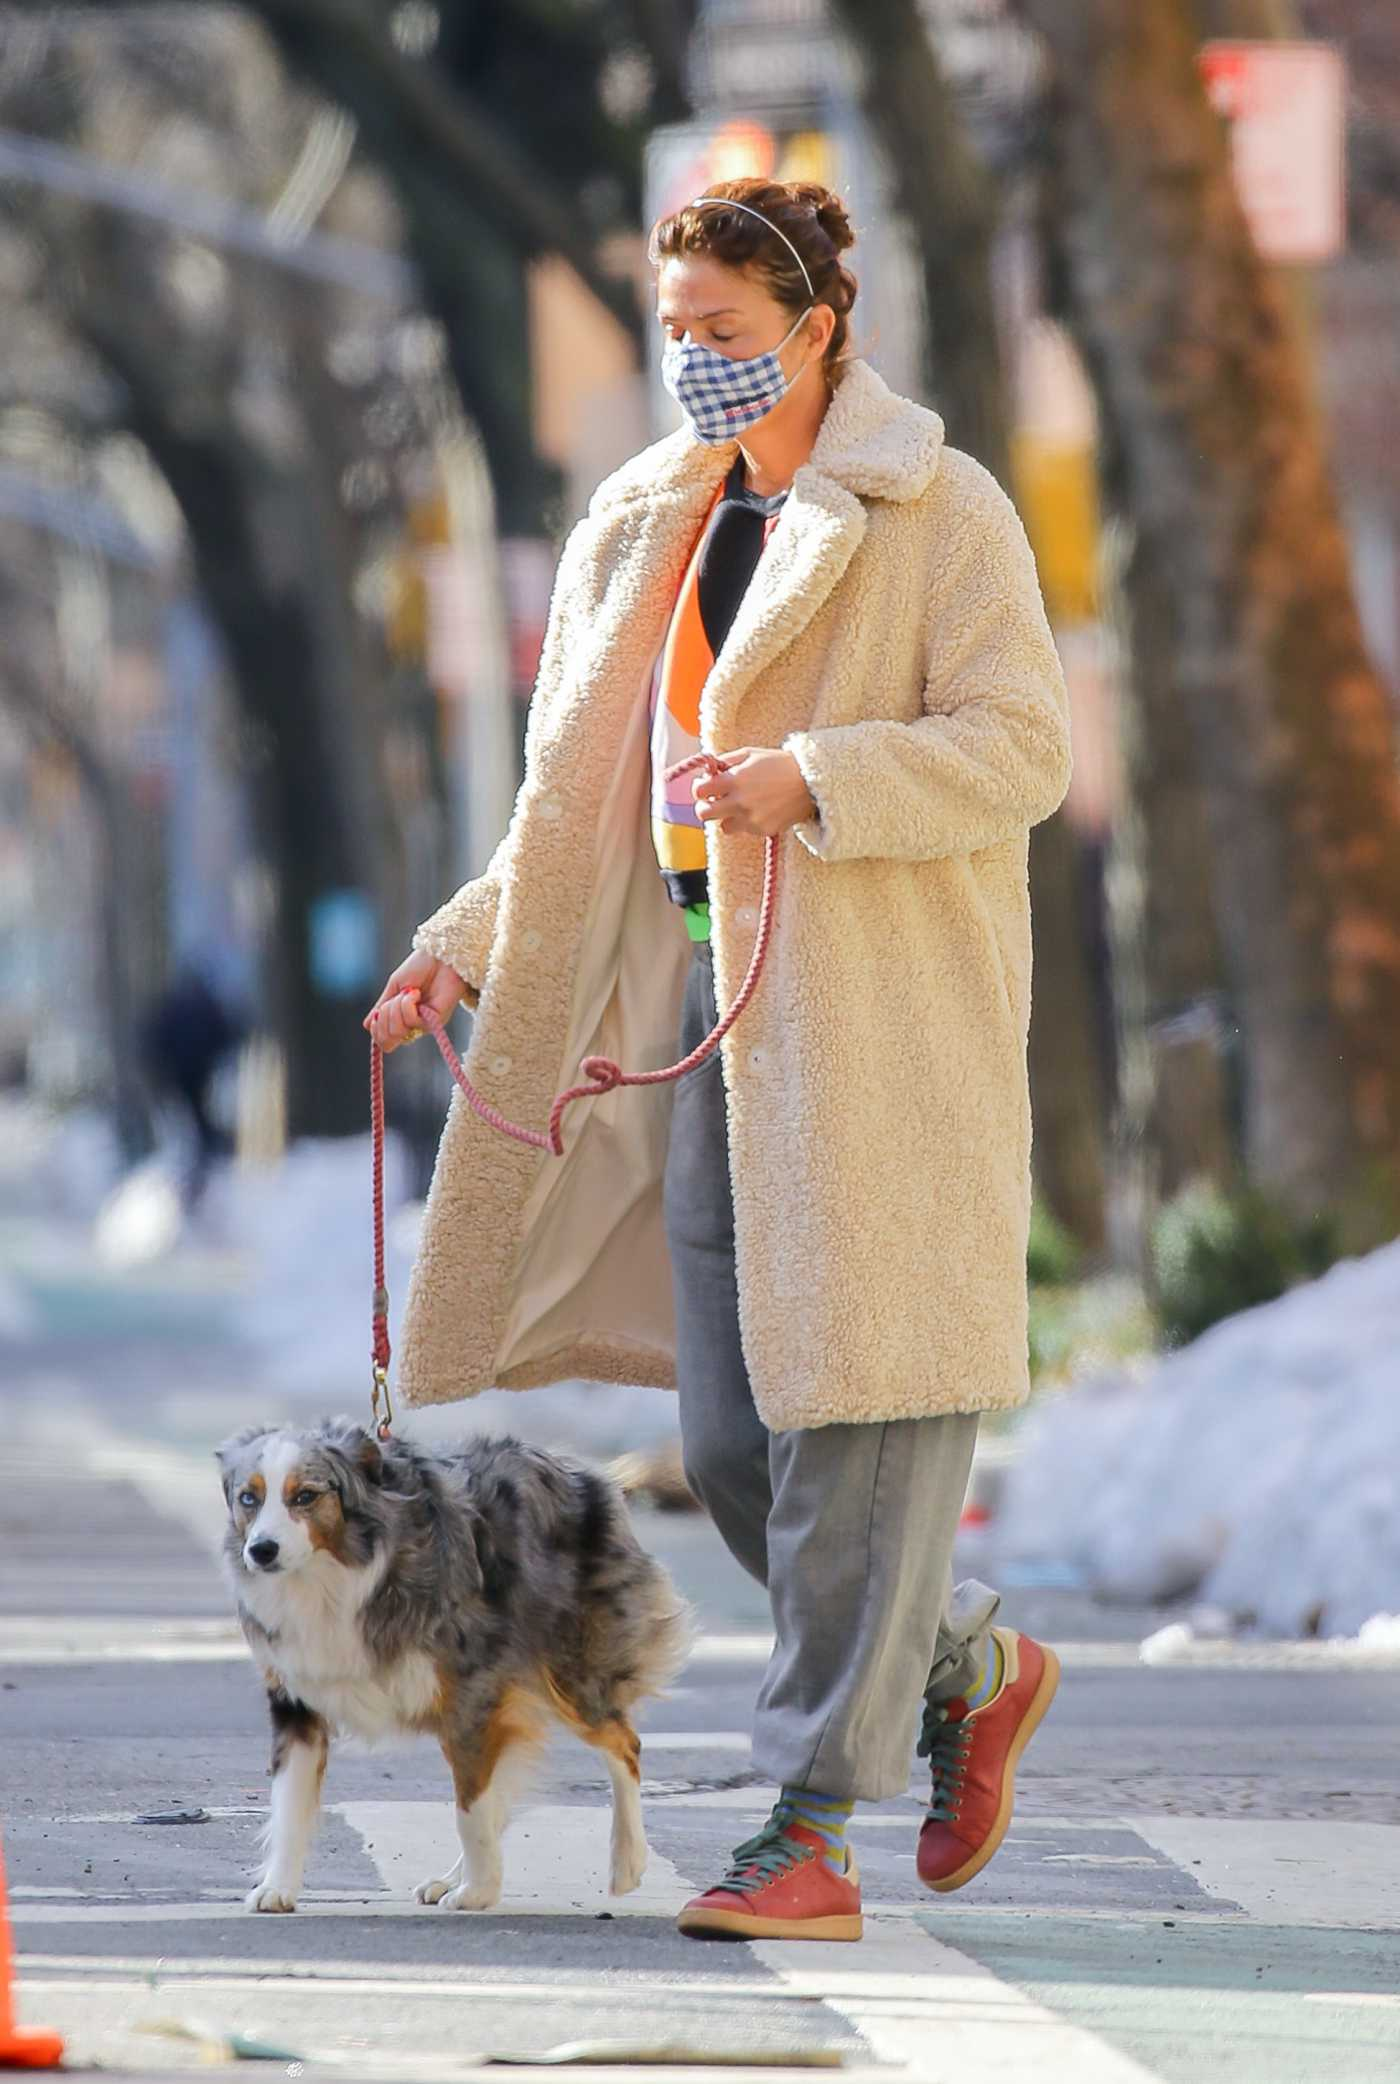 Helena Christensen in a Beige Fur Coat Walks Her Dog in New York 02/20/2021